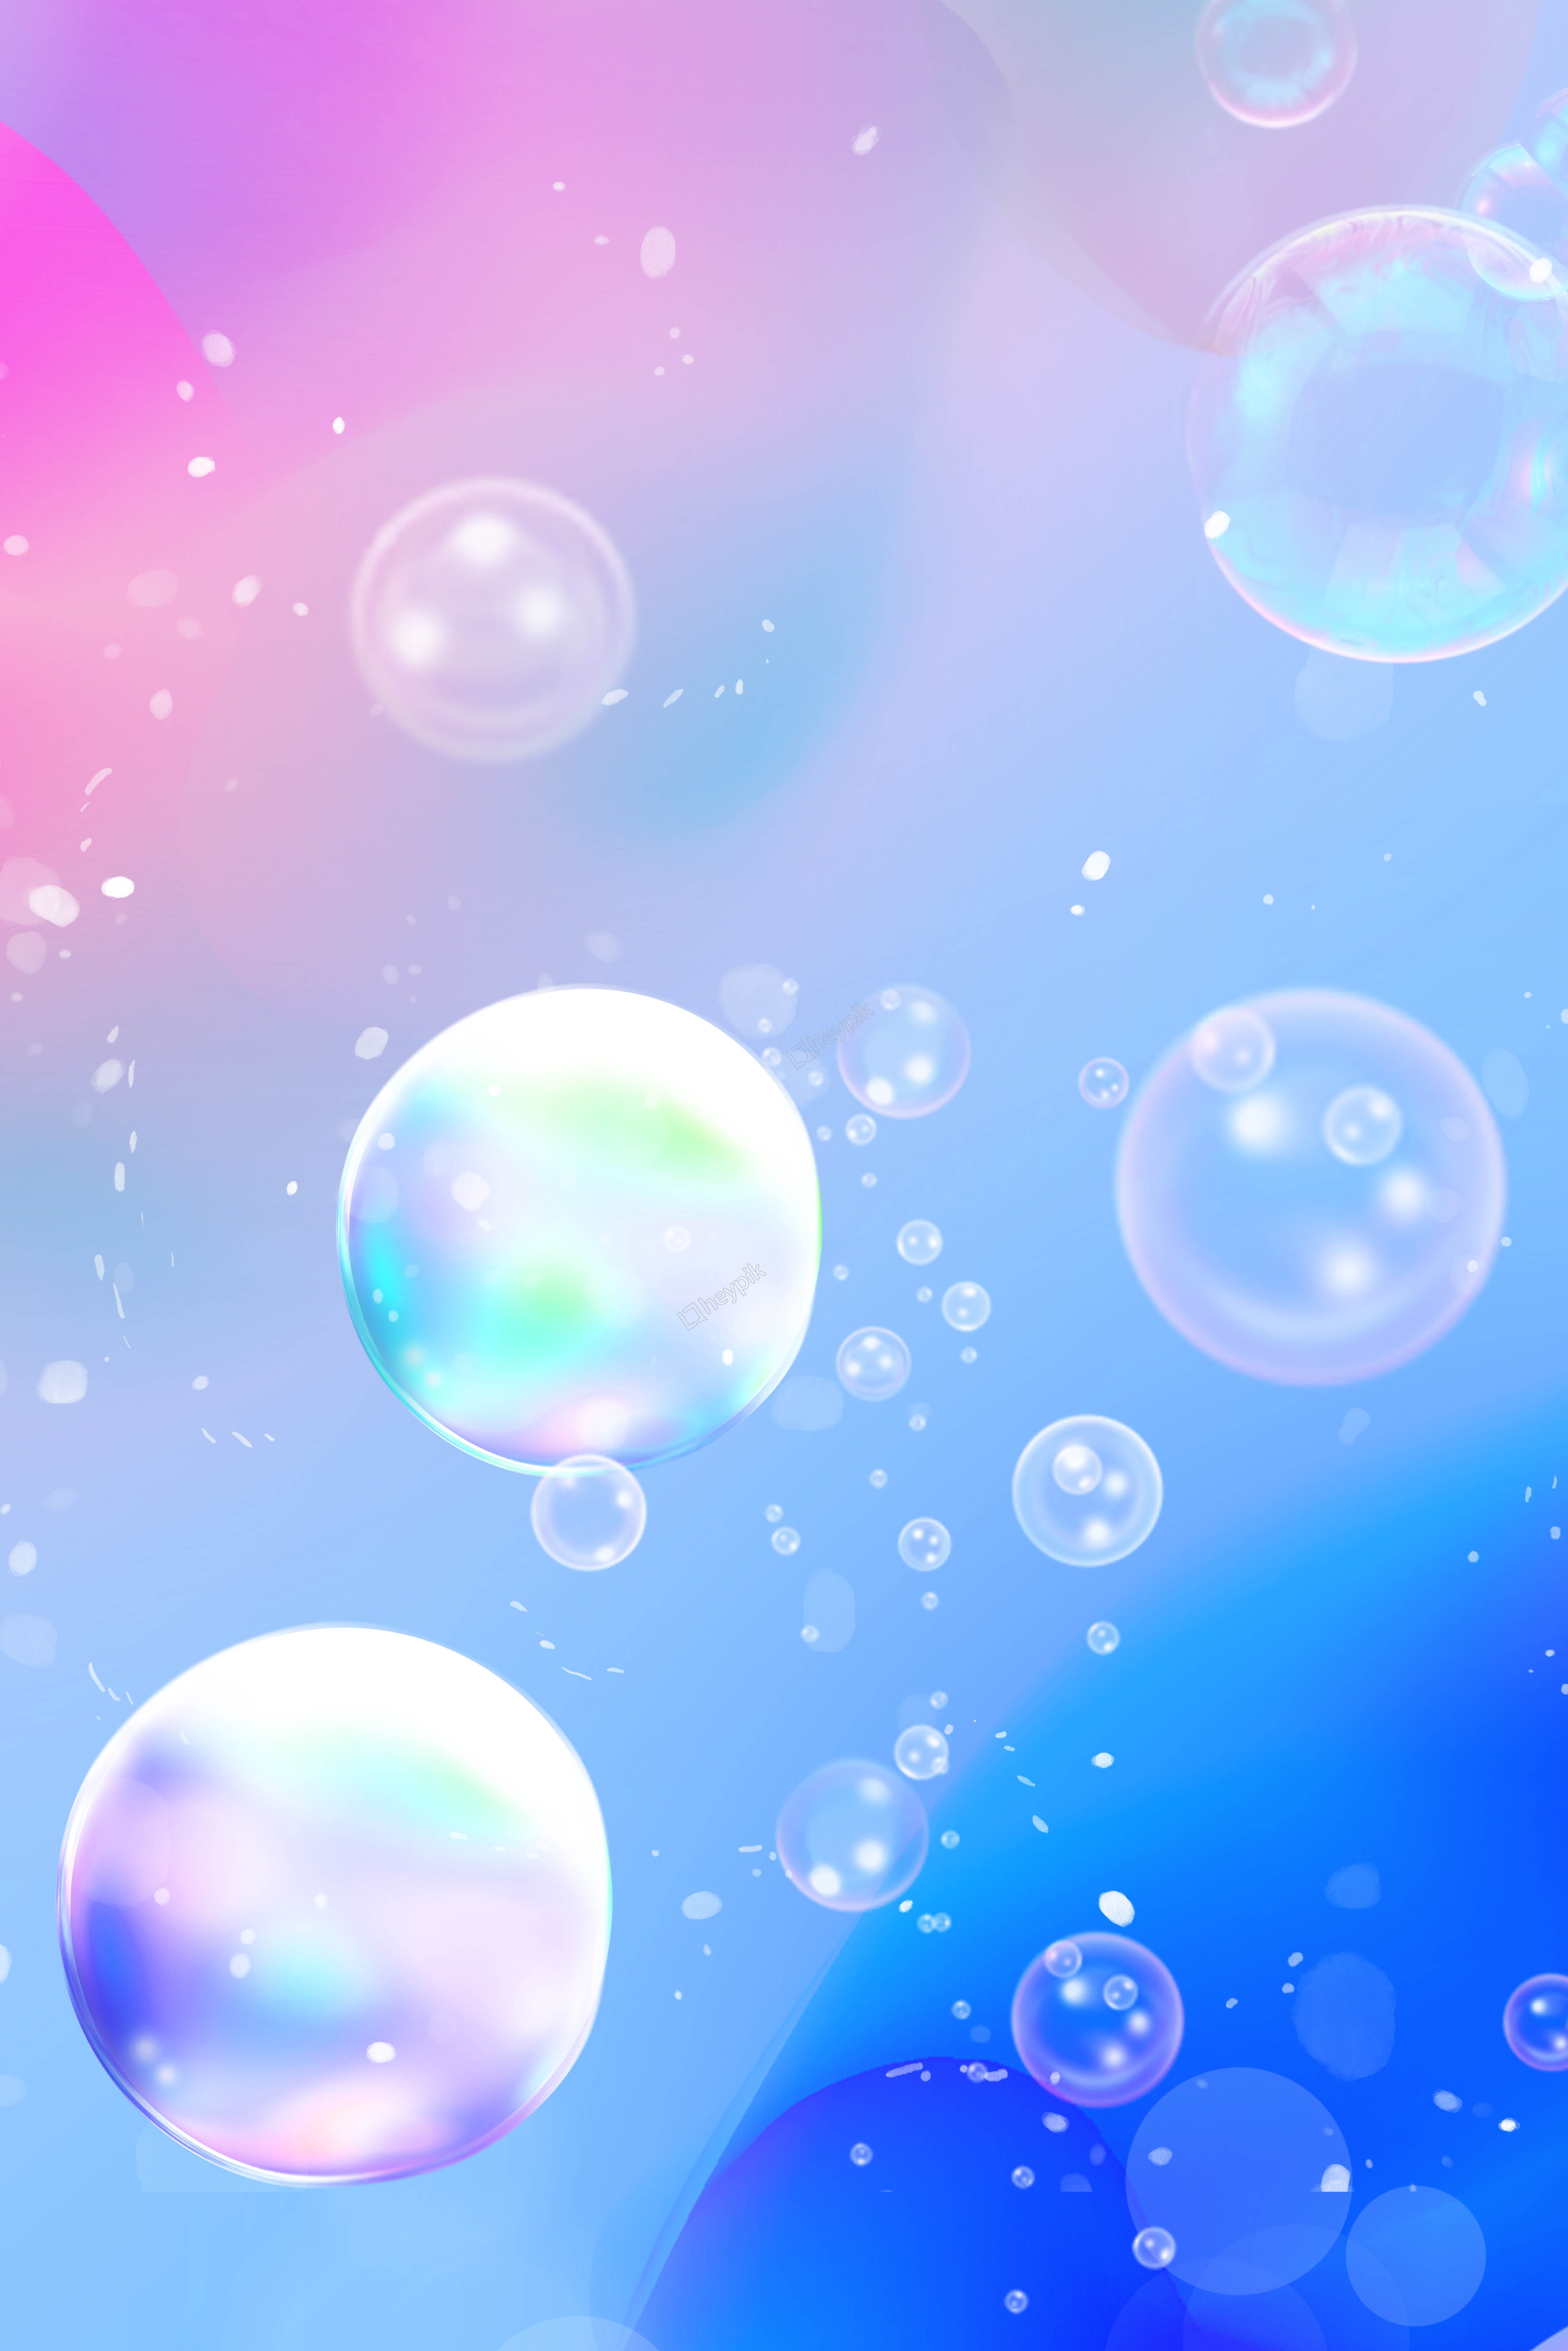 Bubble Background Png & Free Bubble Background.png Transparent.